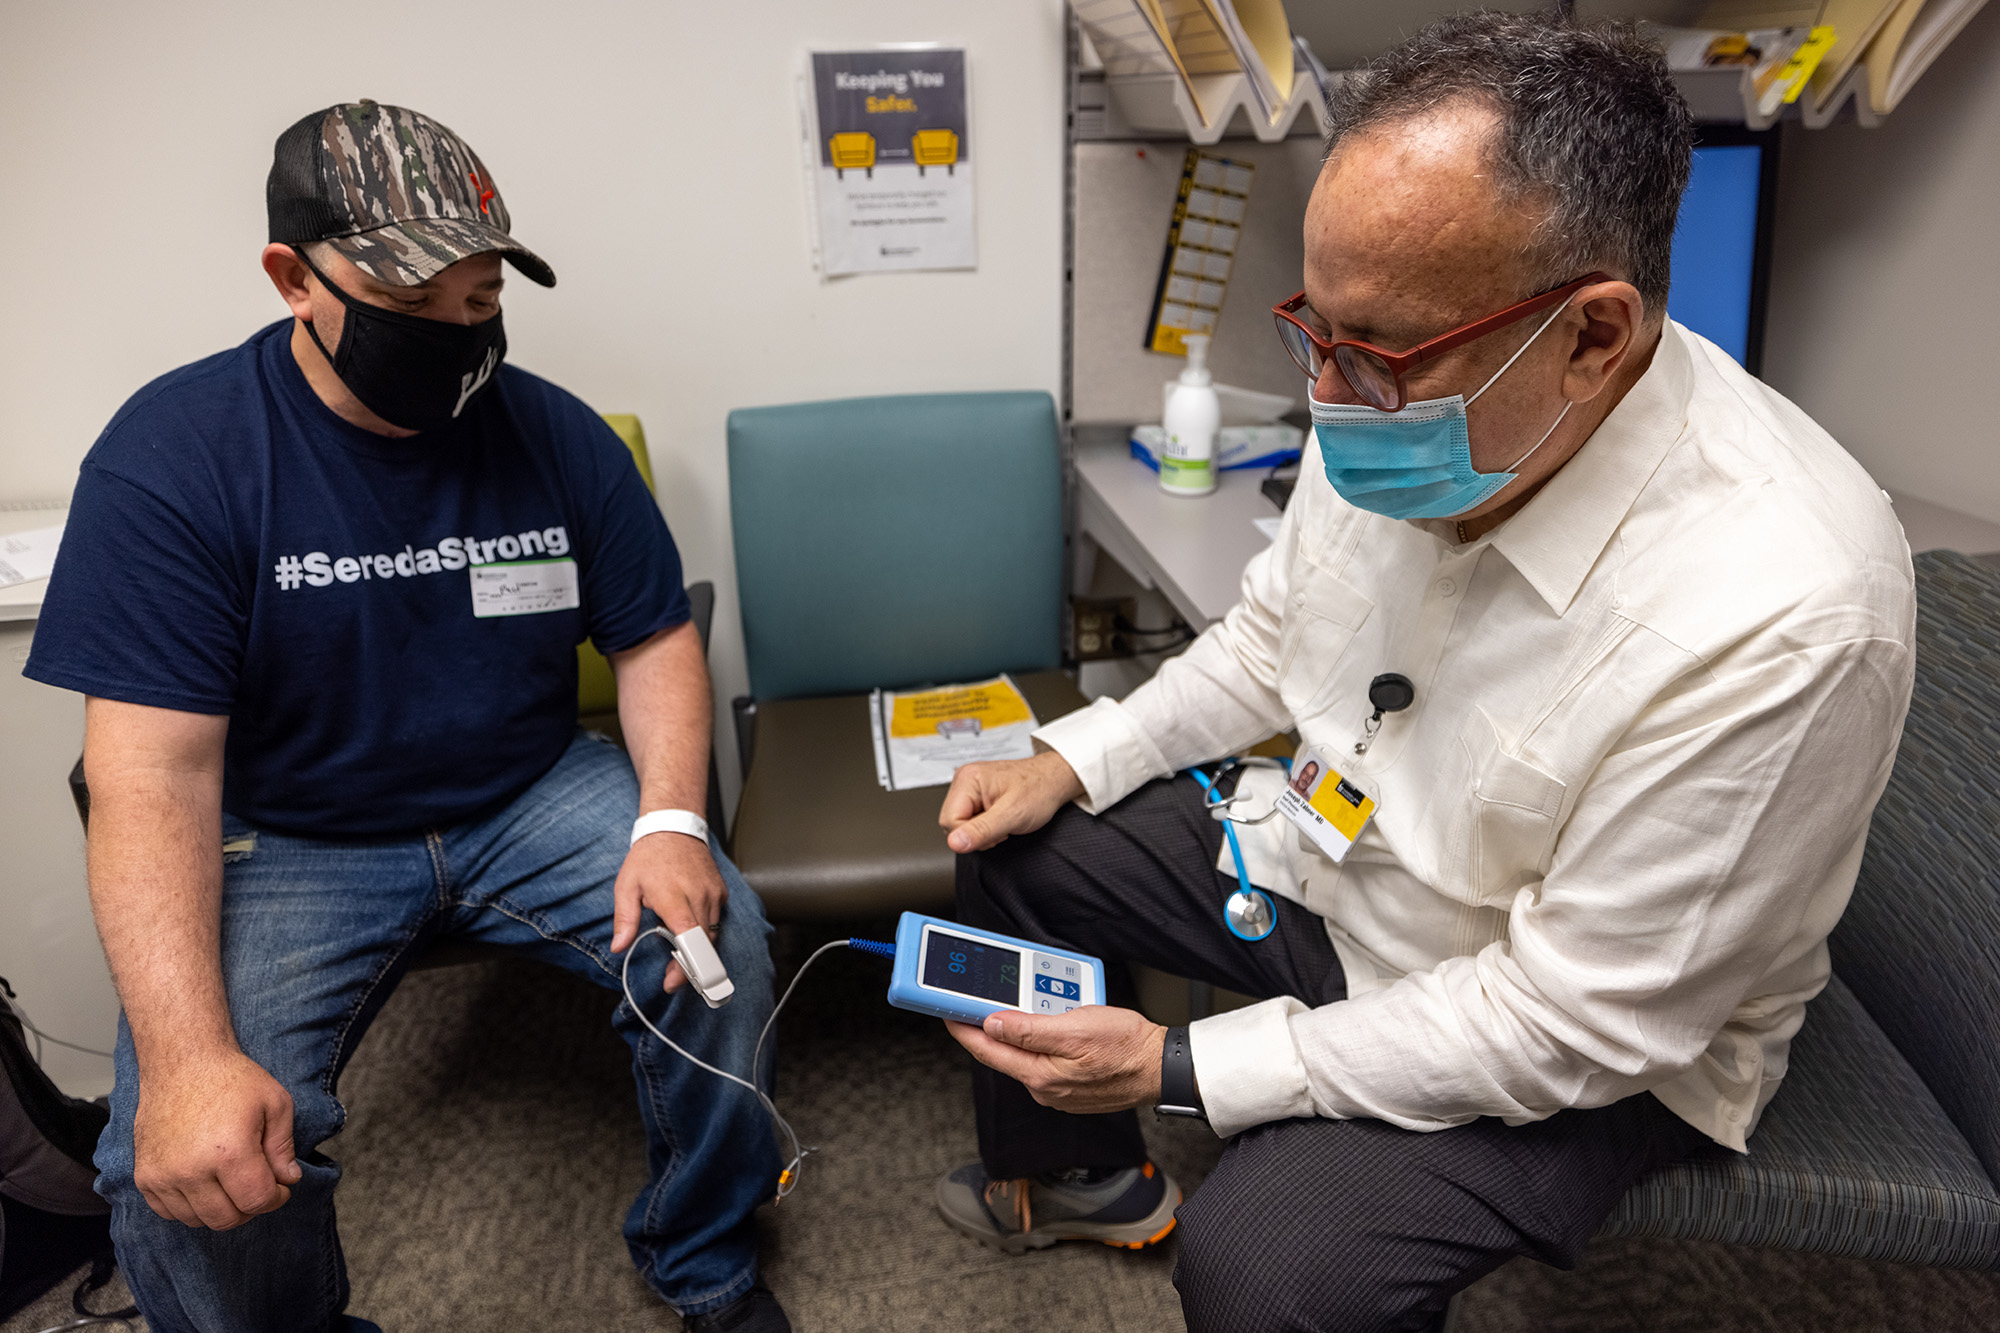 a patient and a medical professional in an exam room; the medical professional is monitoring the patient's vitals such as oxygen levels using a handheld device